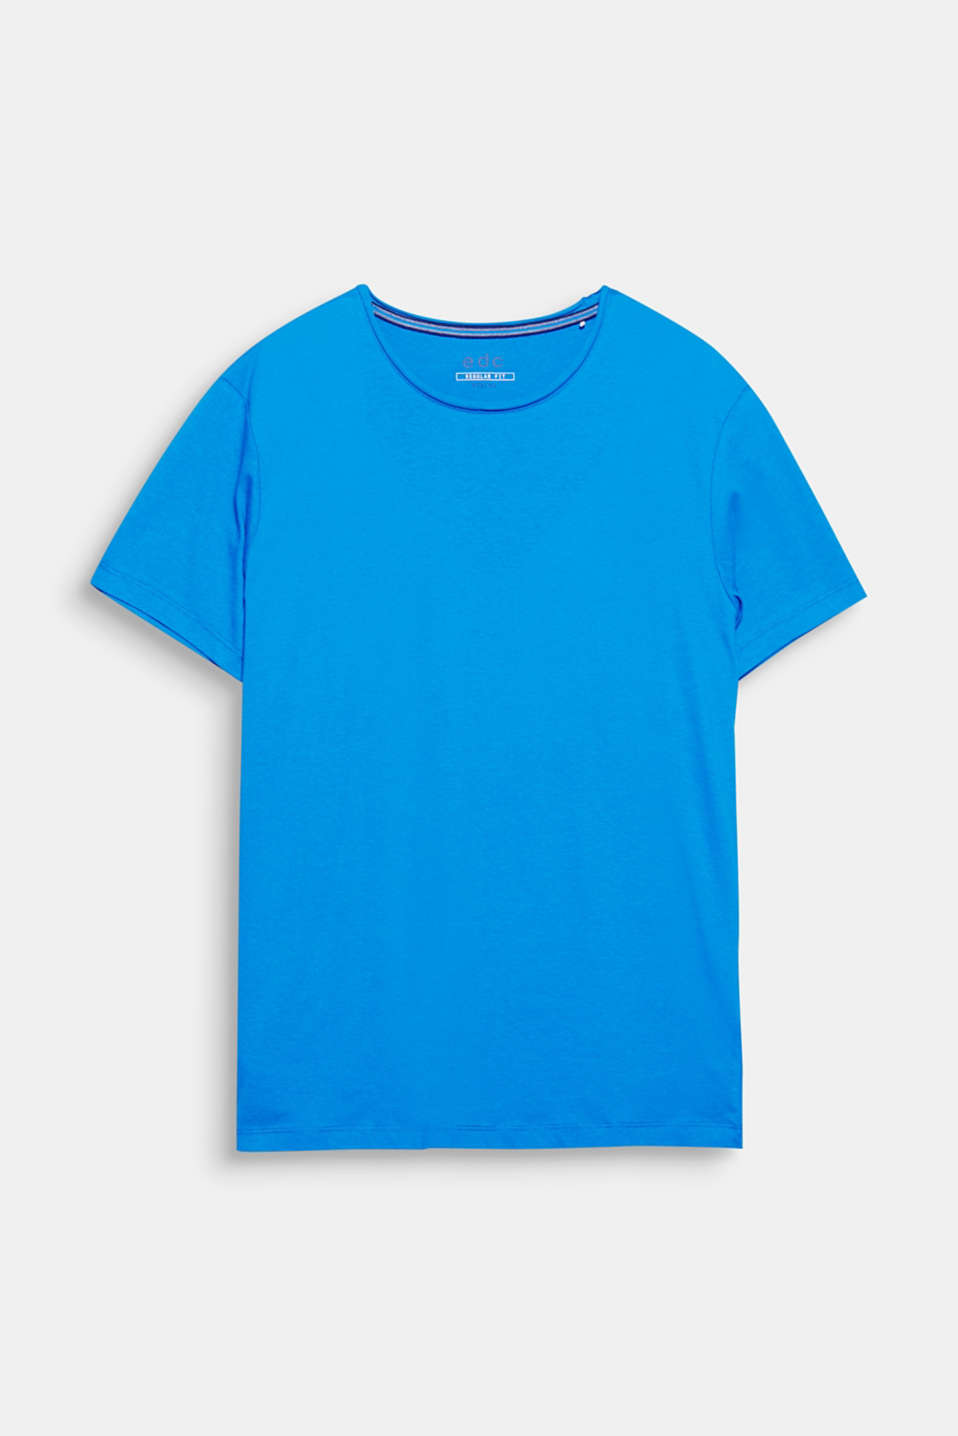 A casual basic style for your look! This T-shirt with a round neckline impresses with its numerous, fashionable colours.